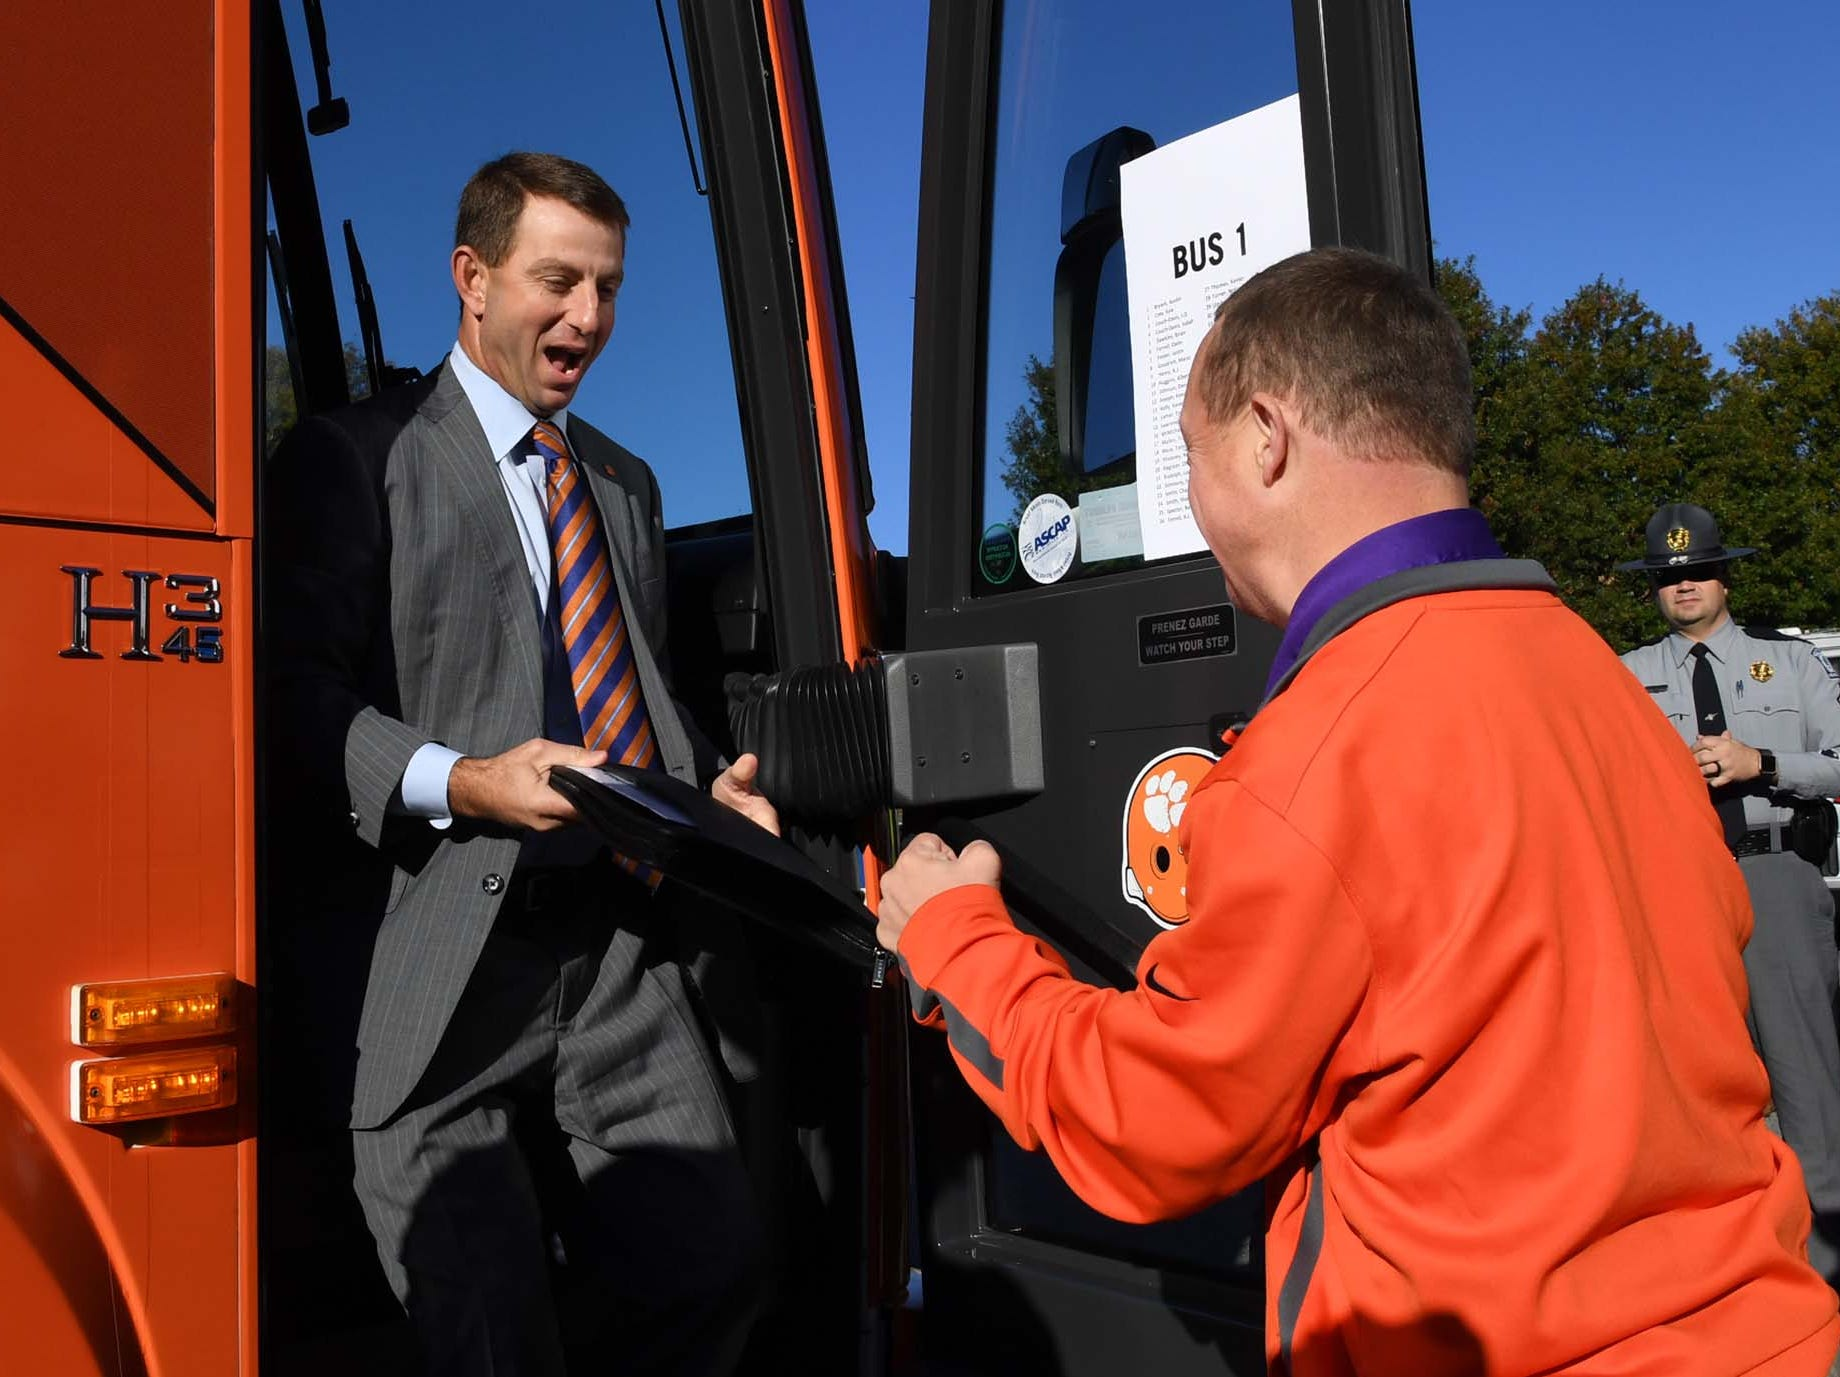 Clemson Head Coach Dabo Swinney is greeted by Brad Hammond during Tiger Walk before the game in Memorial Stadium on Saturday, November 3, 2018.